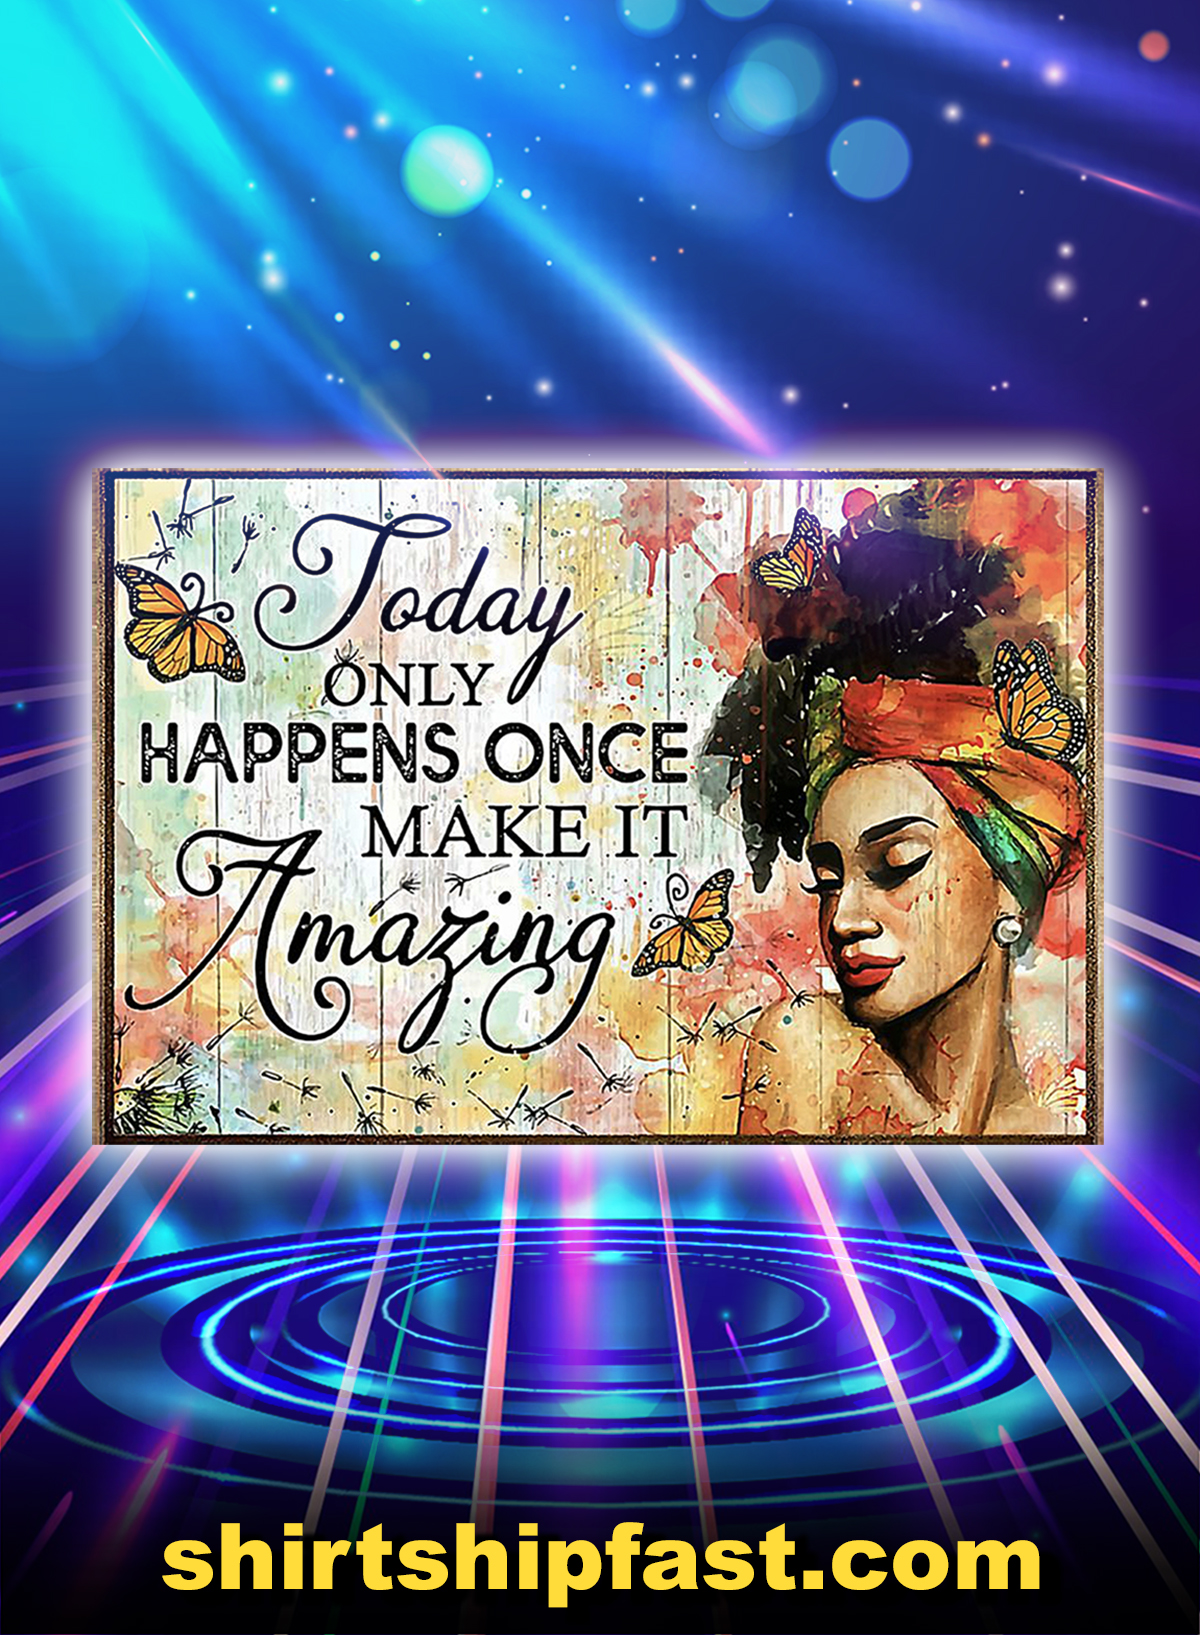 Butterfly girl today only happens once make it amazing poster - A1